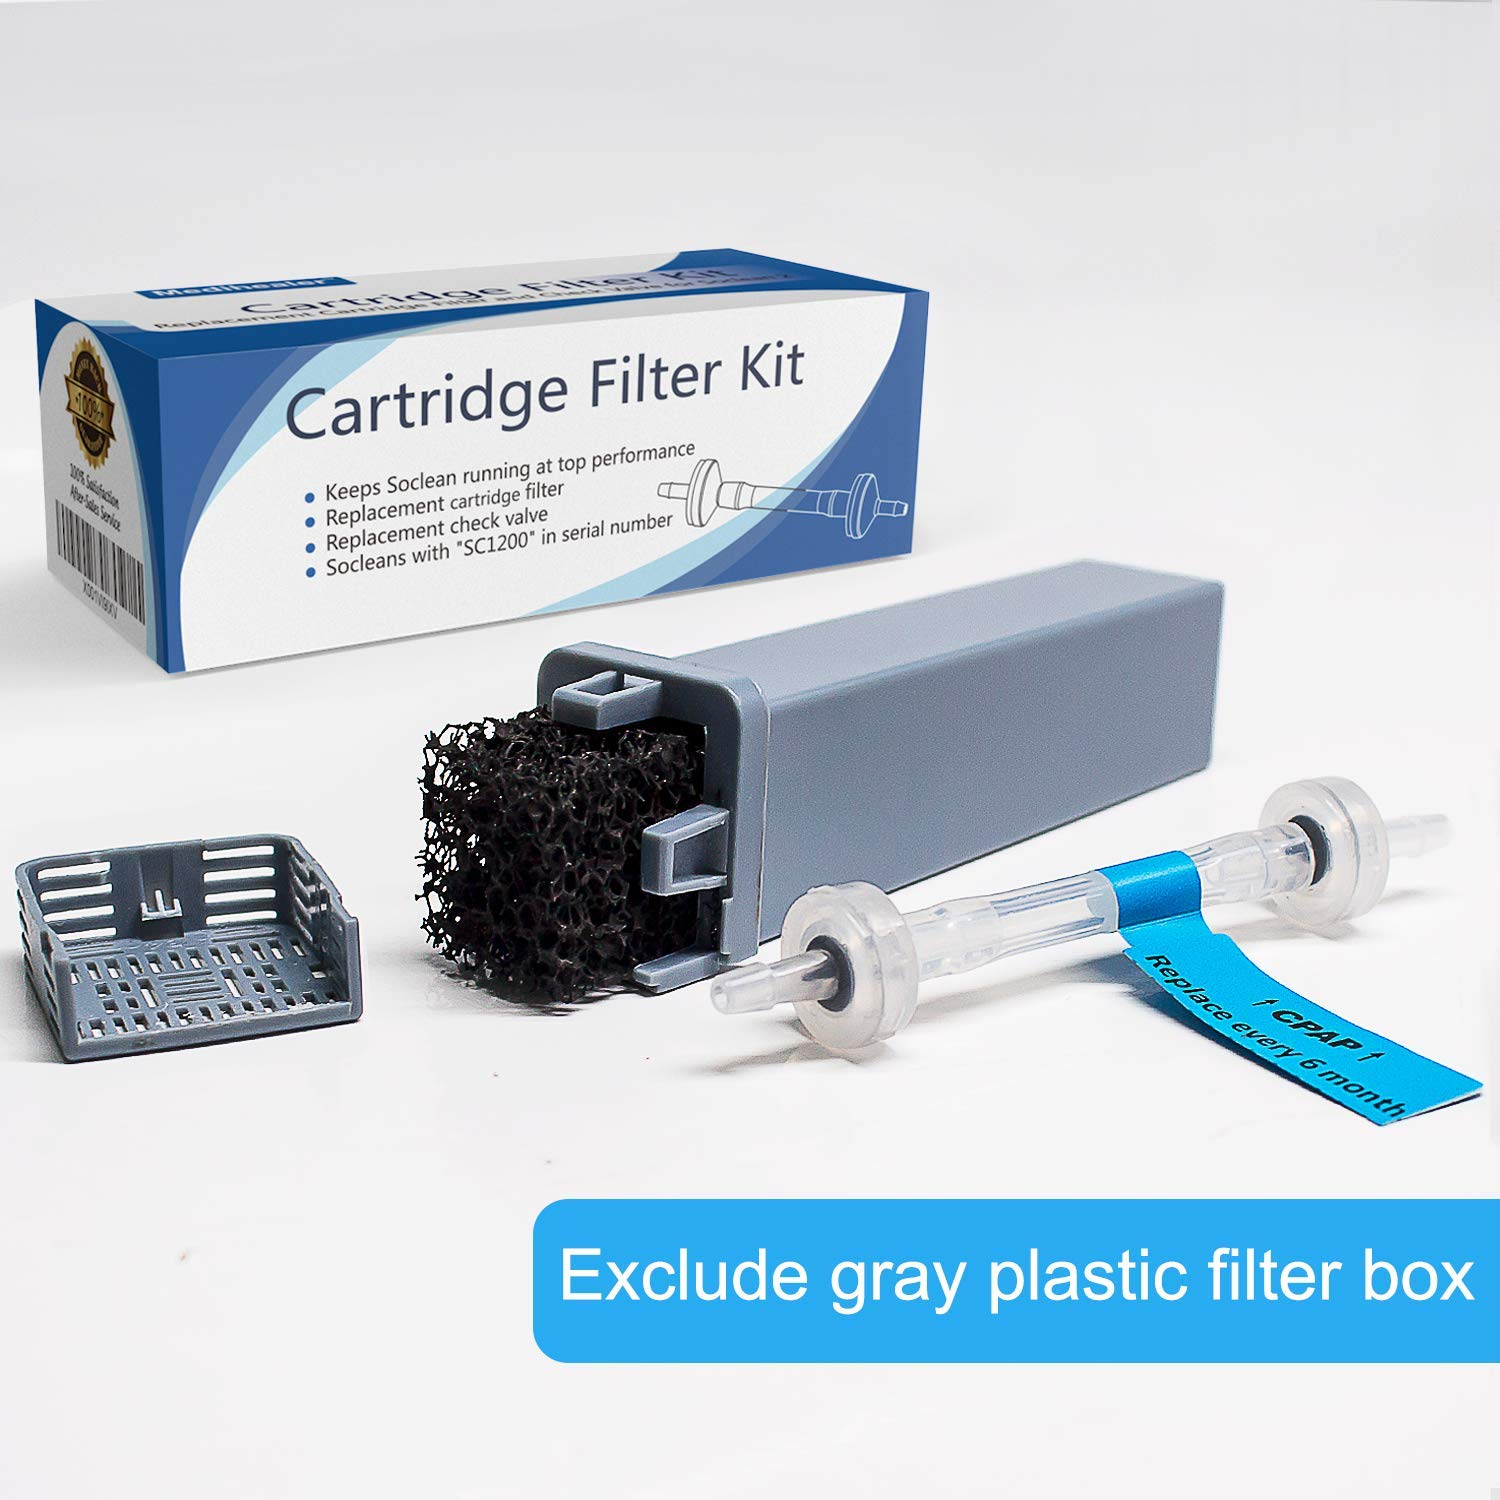 Cartridge Filter Kit for SoClean 2 (SC1200) - 4 Cartridge Replacement Filters + 1 Check Valve - SoClean CPAP Cartridge Filter & Check Valve Replacement Set (Gray Plastic Filter Box NOT Included)